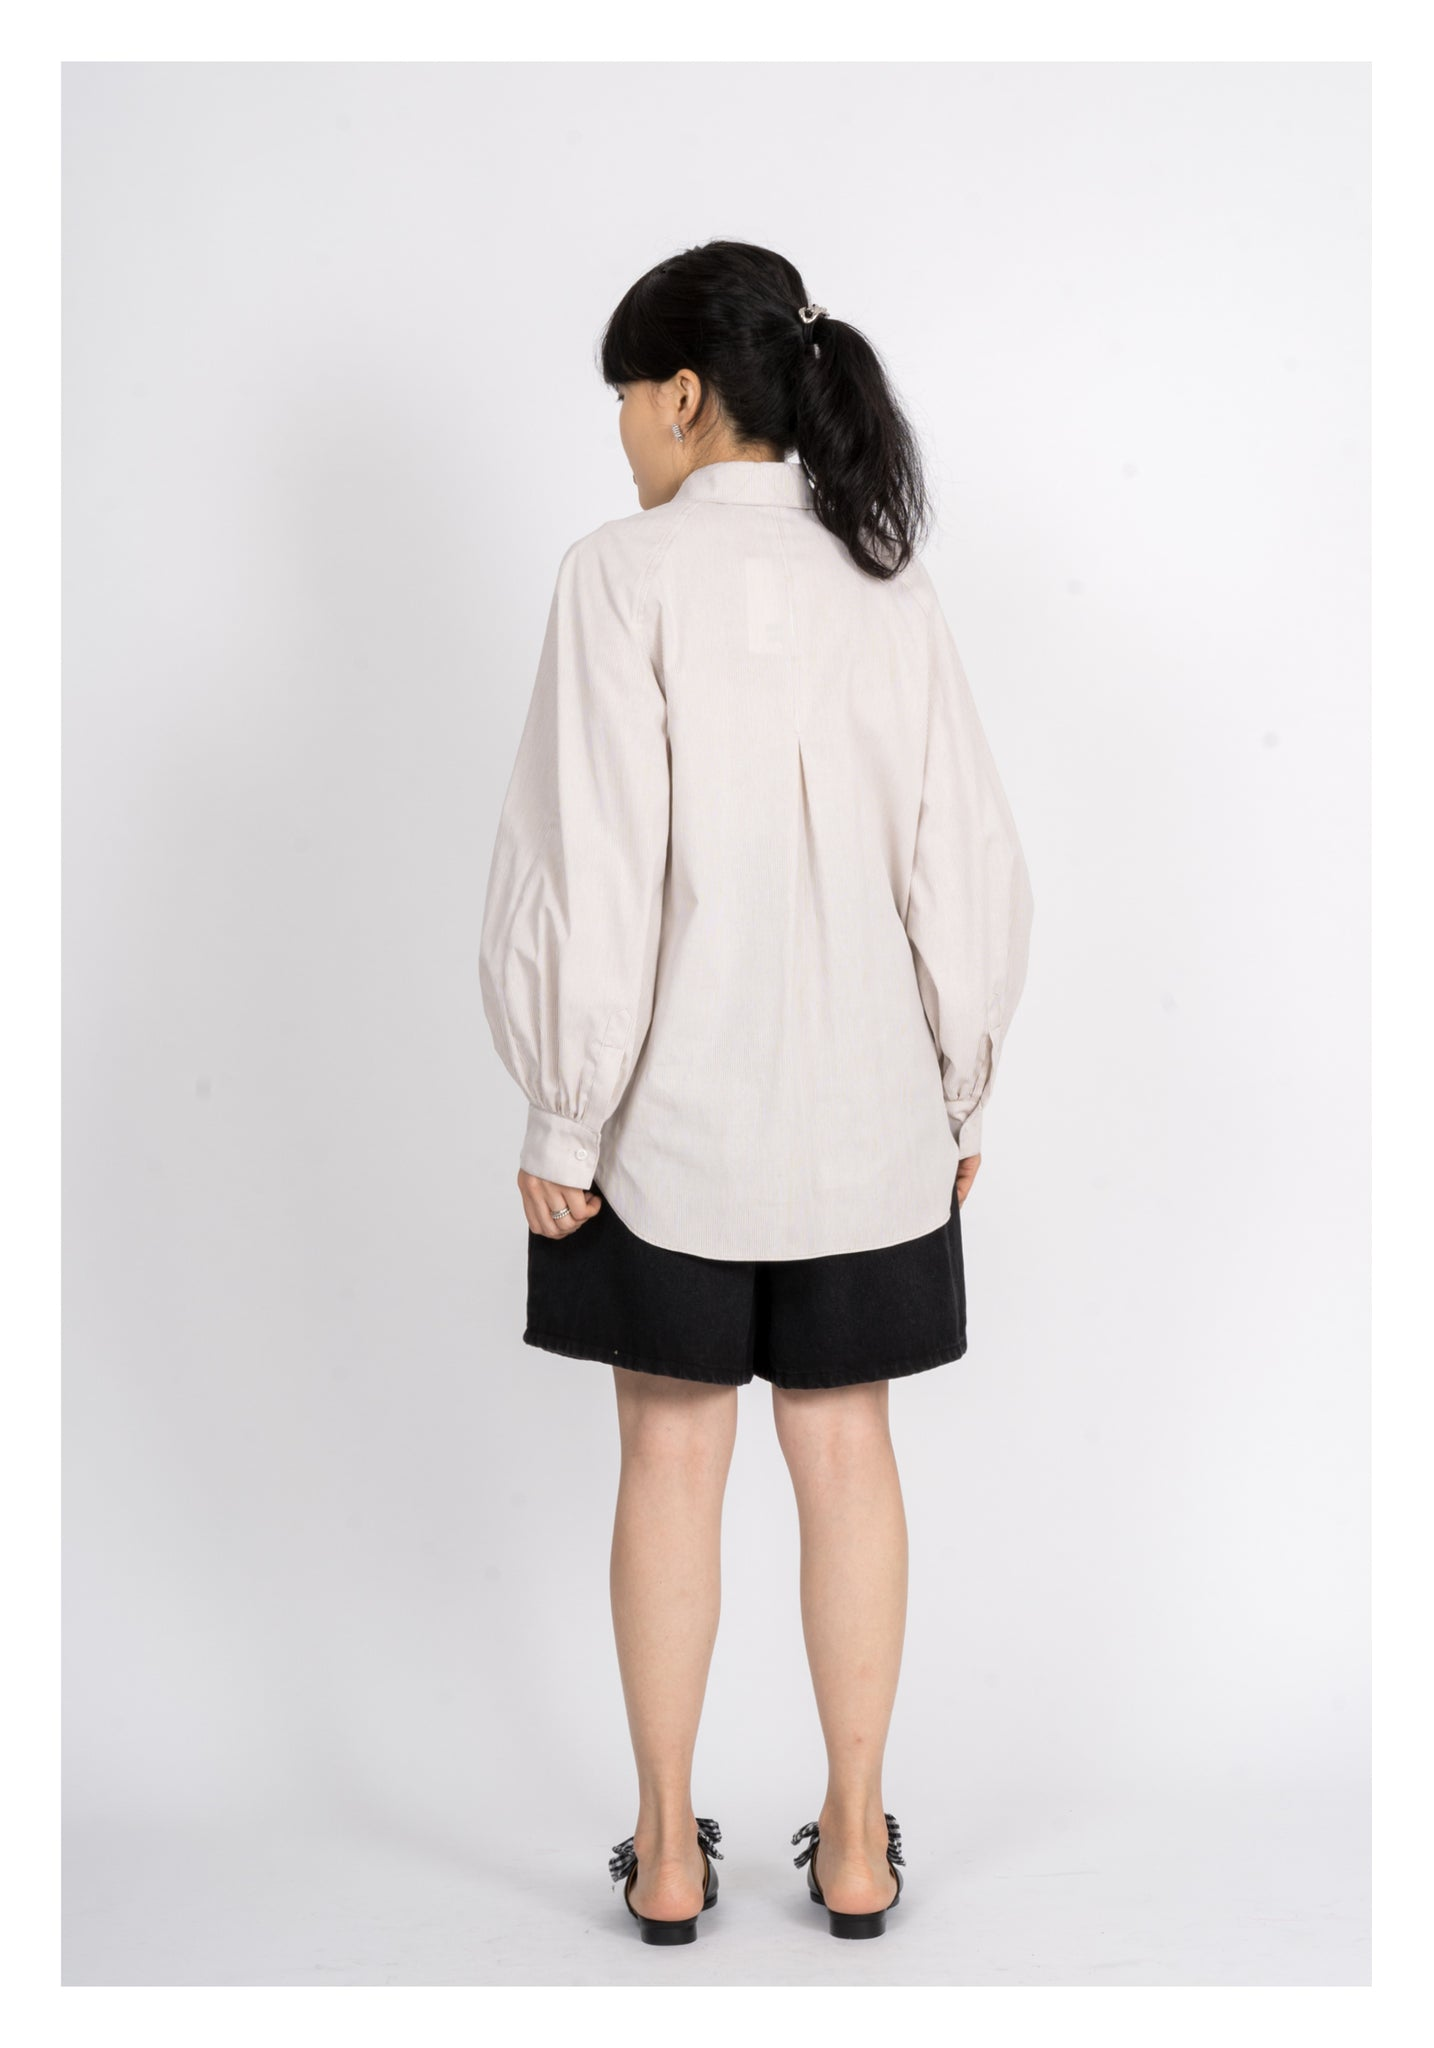 Reglan Sleeves Double Button Shirt - whoami